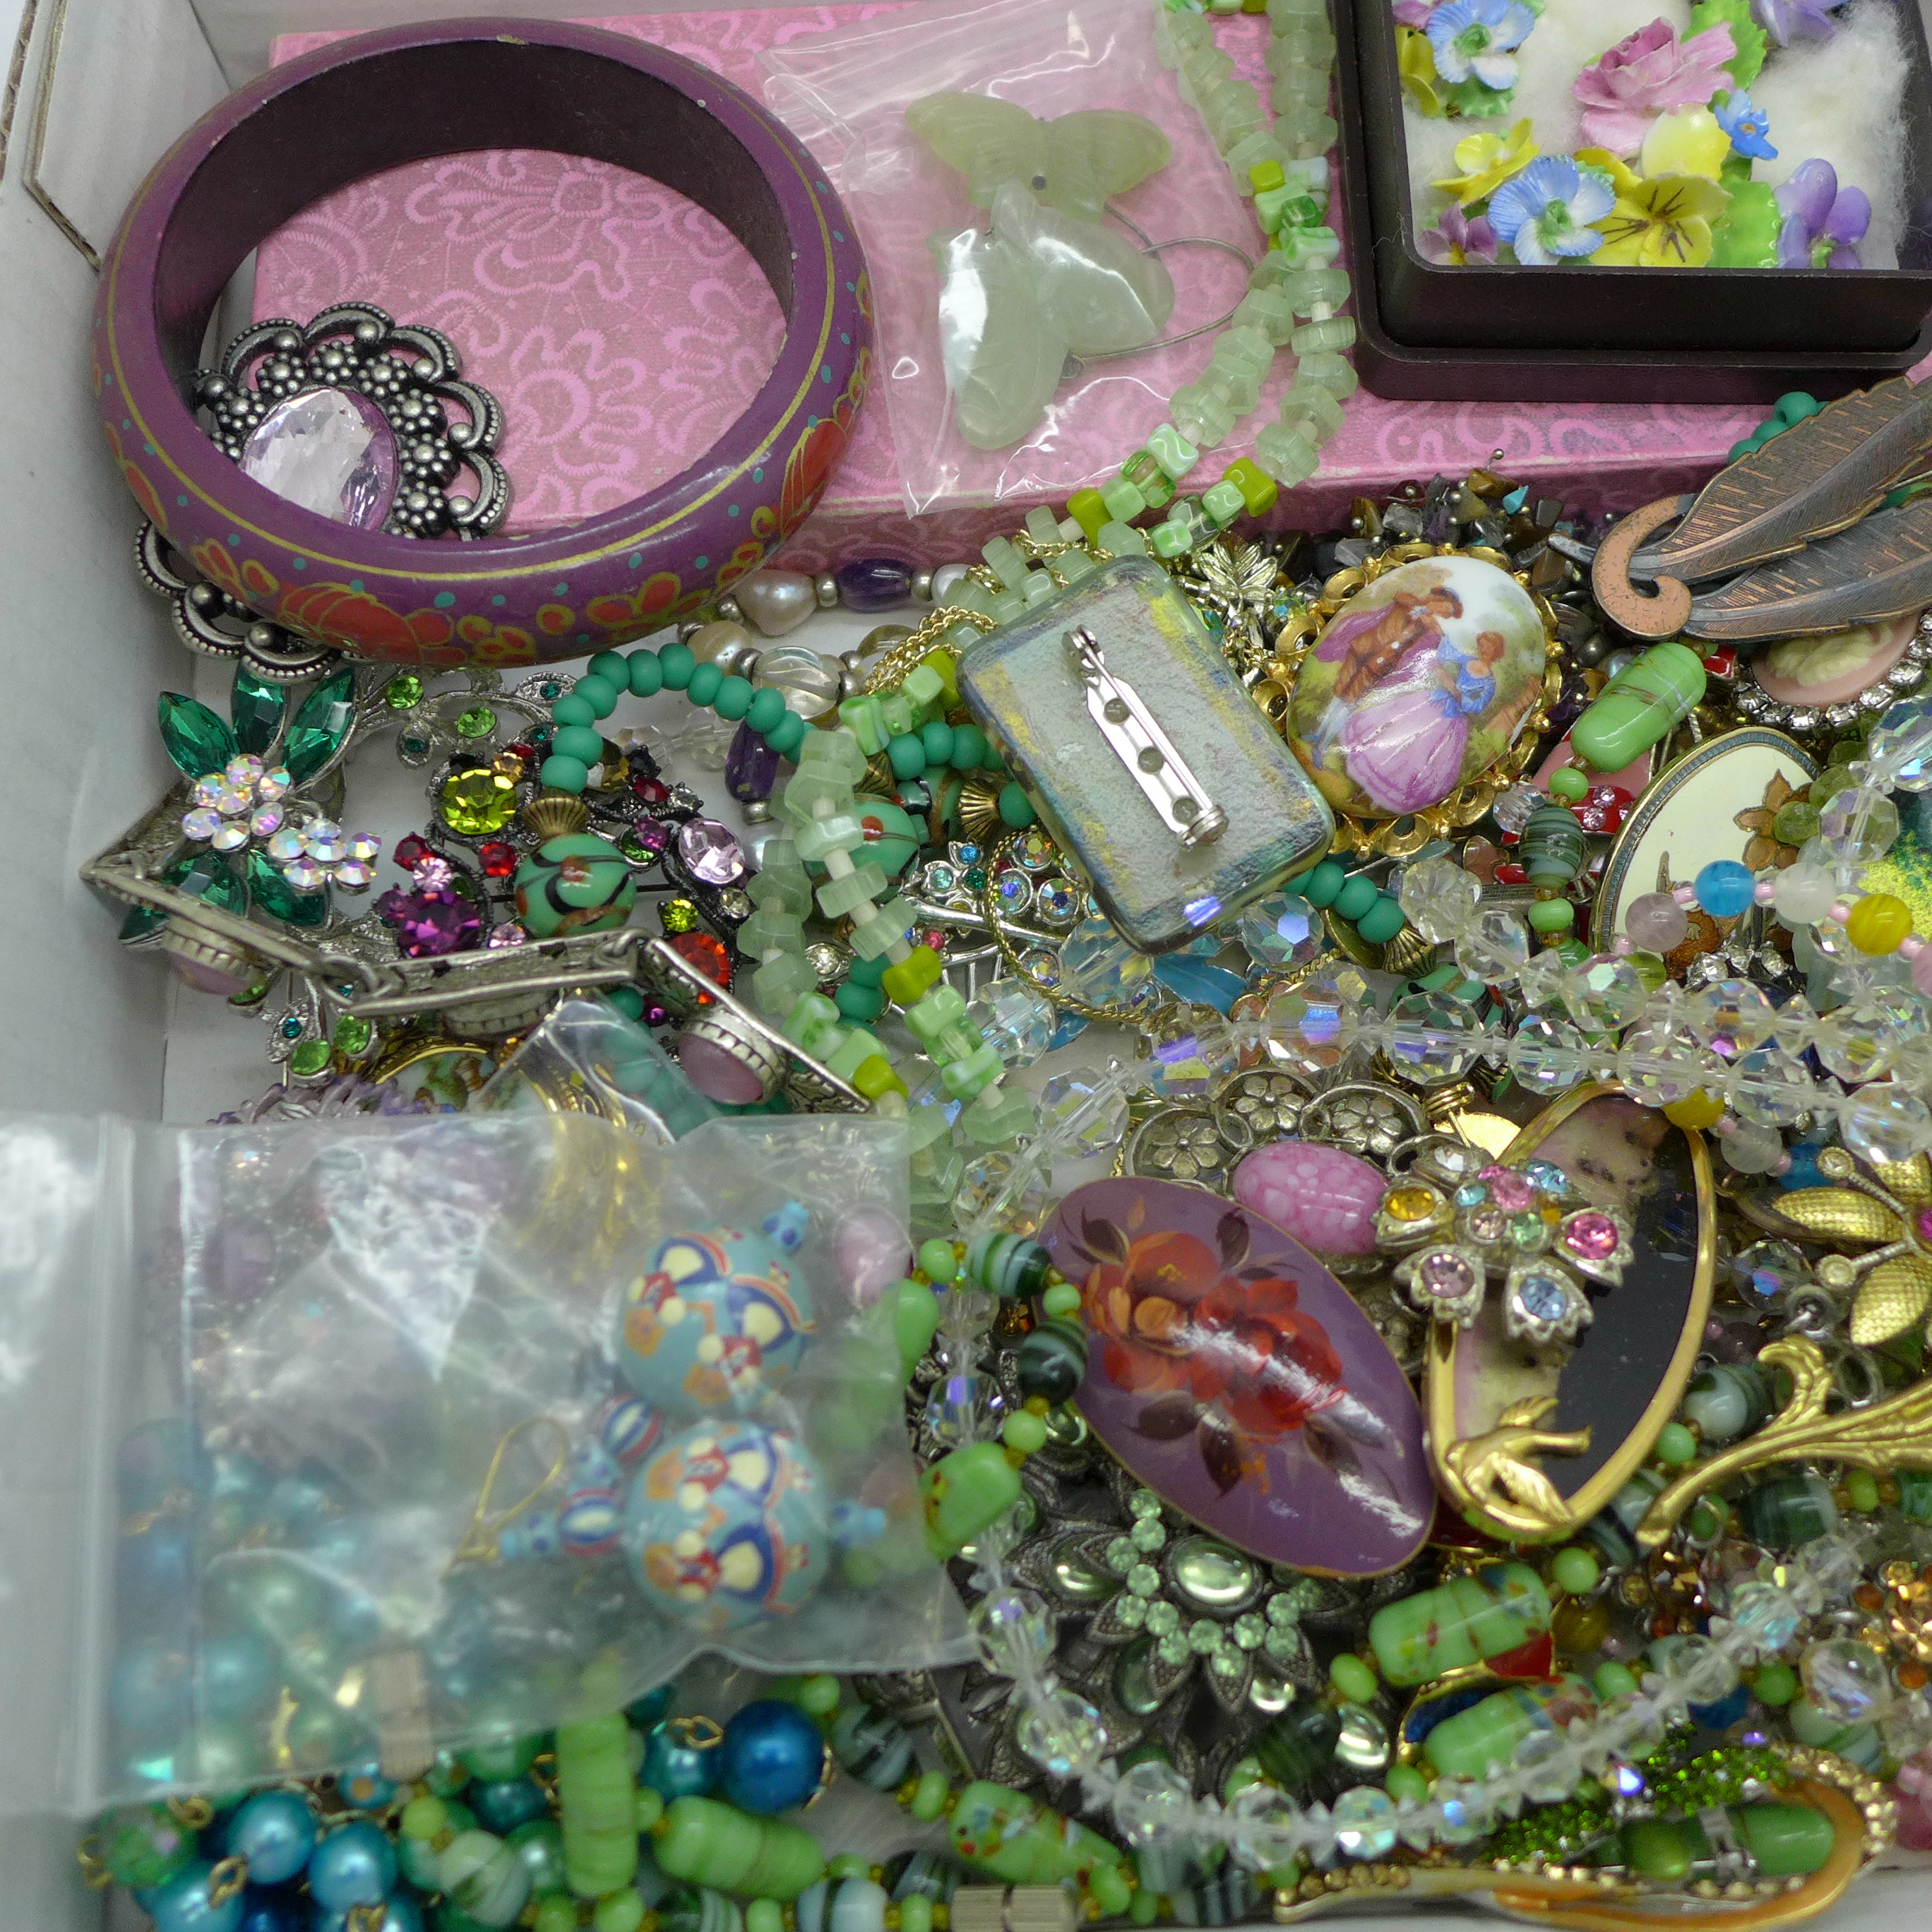 Glass and crystal bead necklaces, earrings, brooches and other costume jewellery - Image 2 of 3